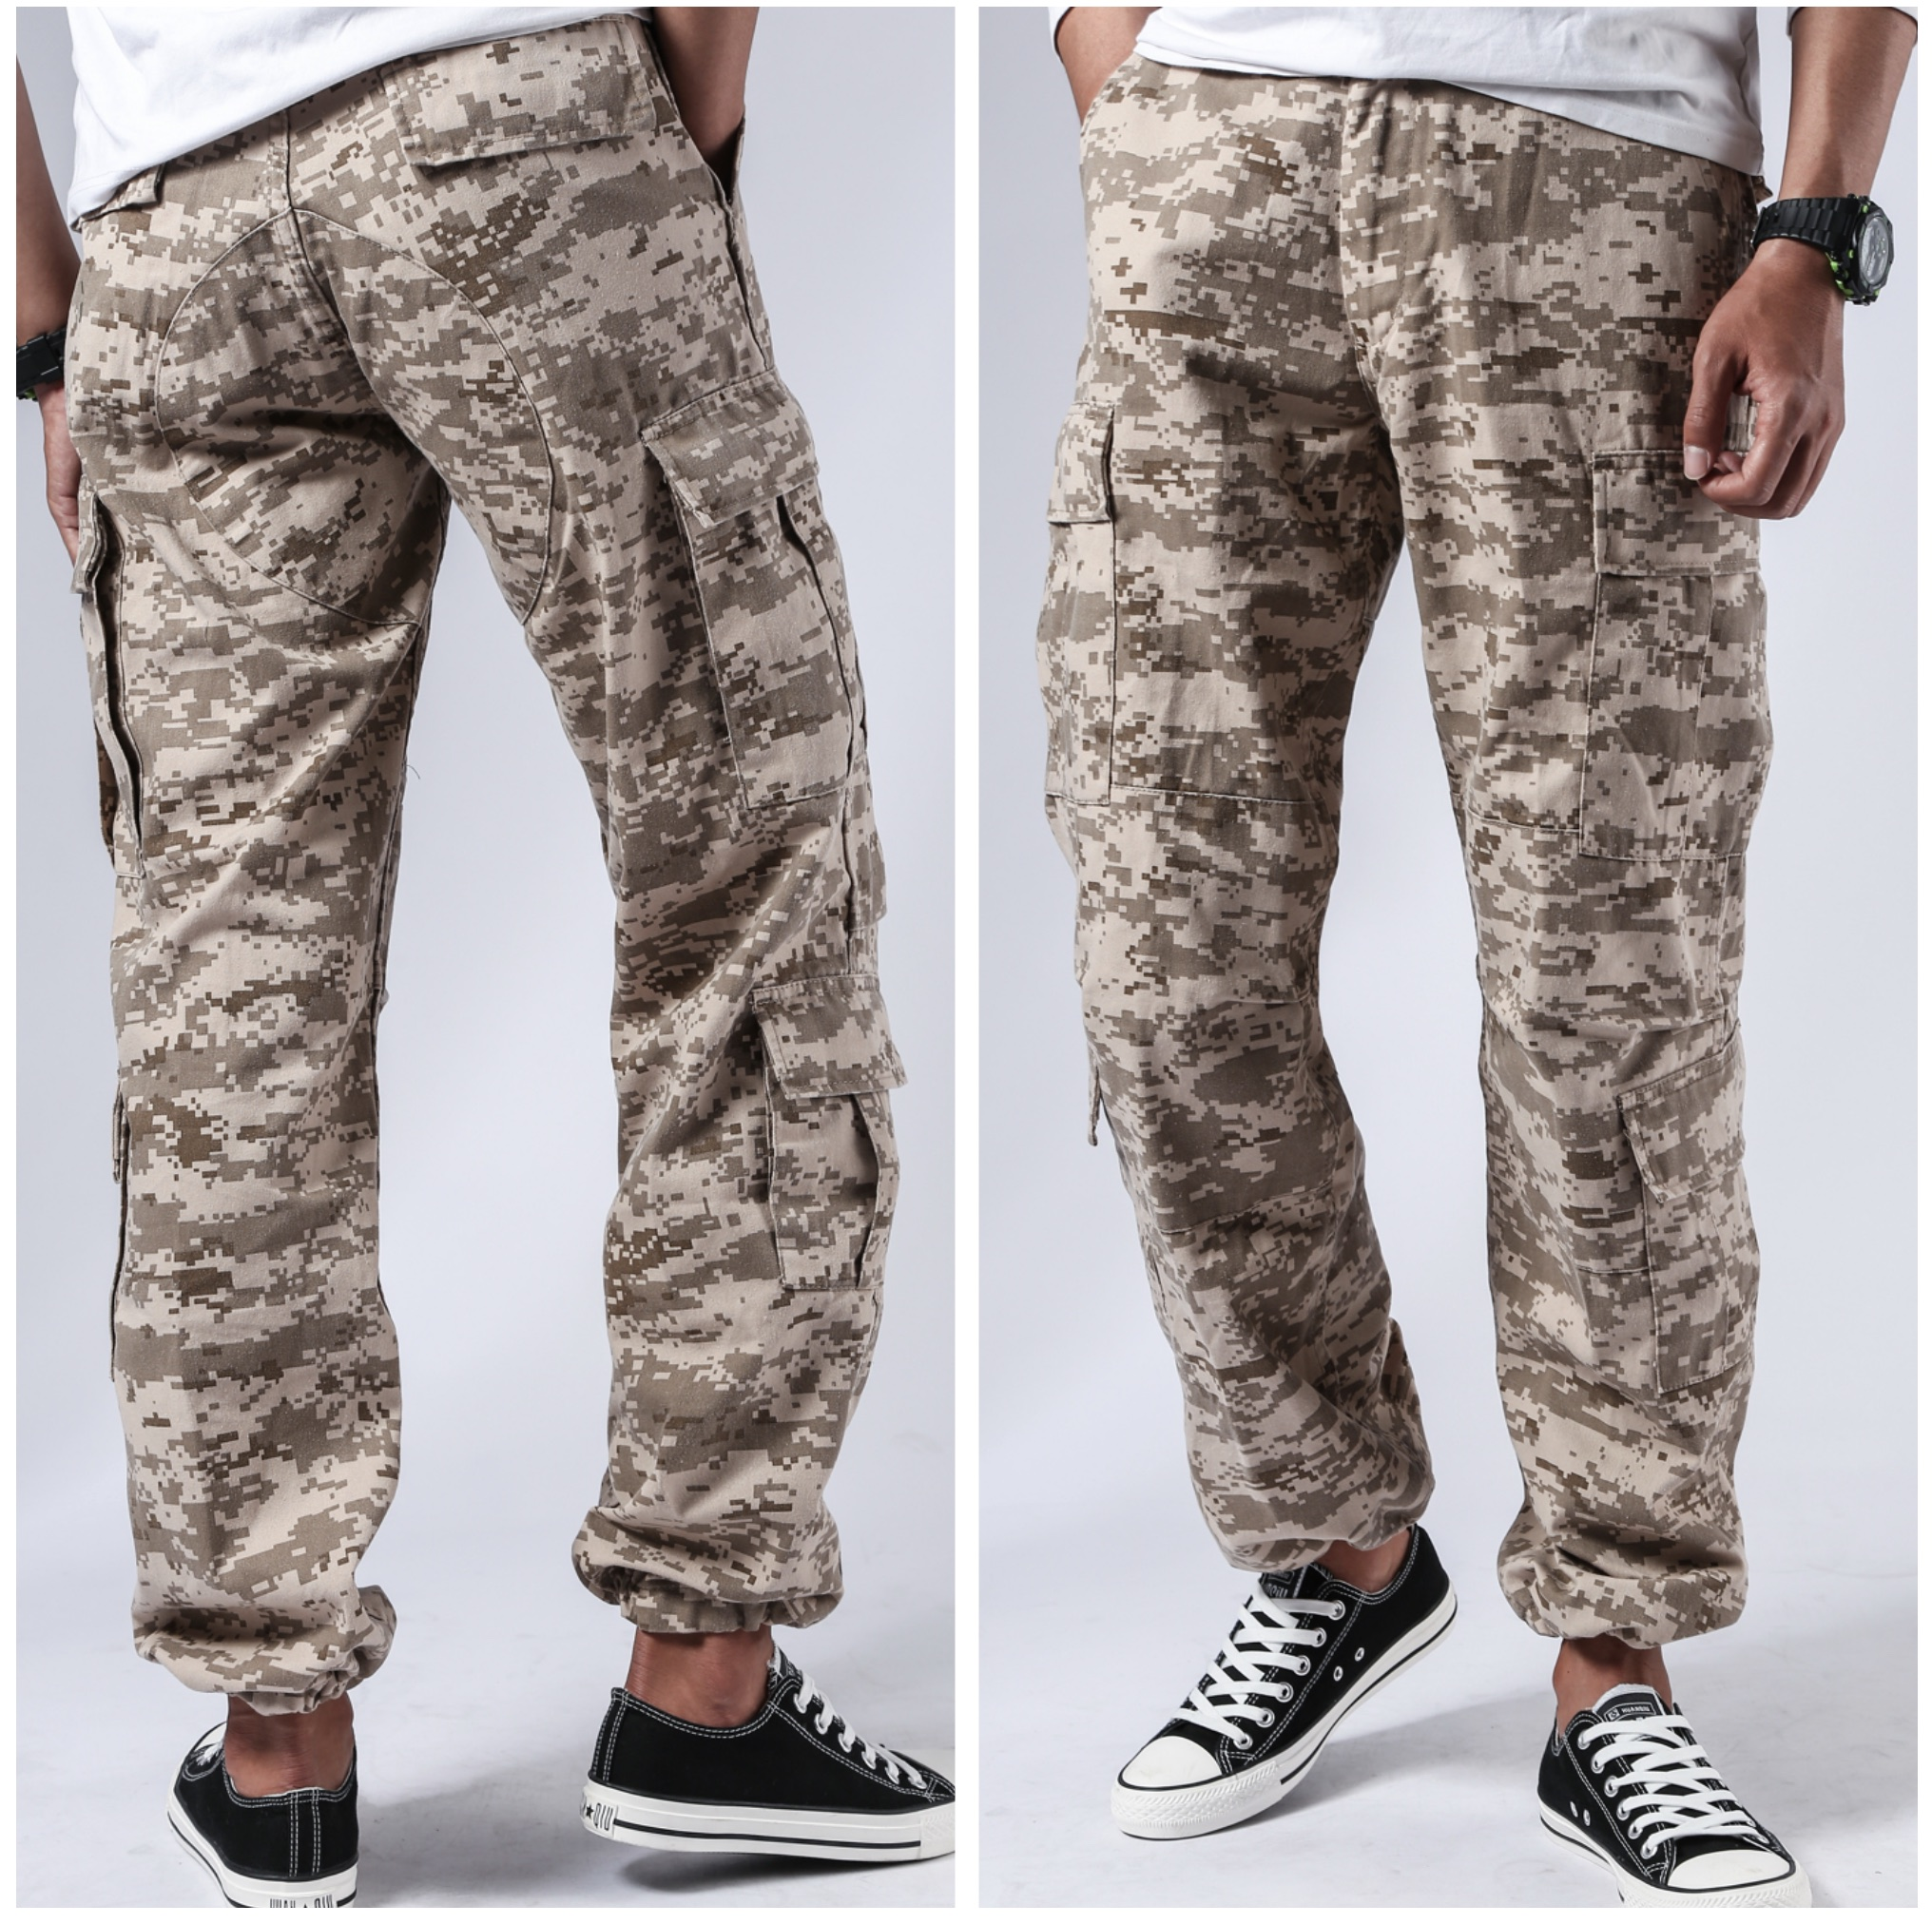 Mens Combat Military Tactical Cargo Pants Multi Pockets Casual Work Durable Cargo Pants